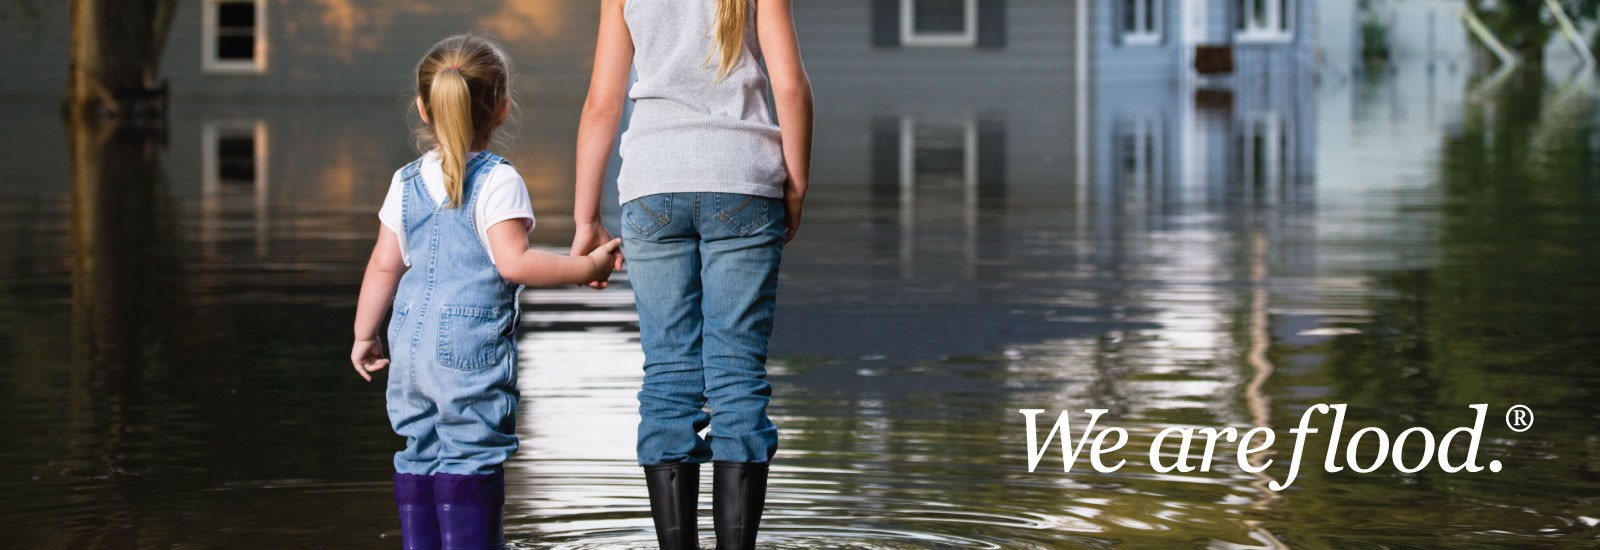 Wright Flood The Nation S Largest Flood Insurance Company Linkedin